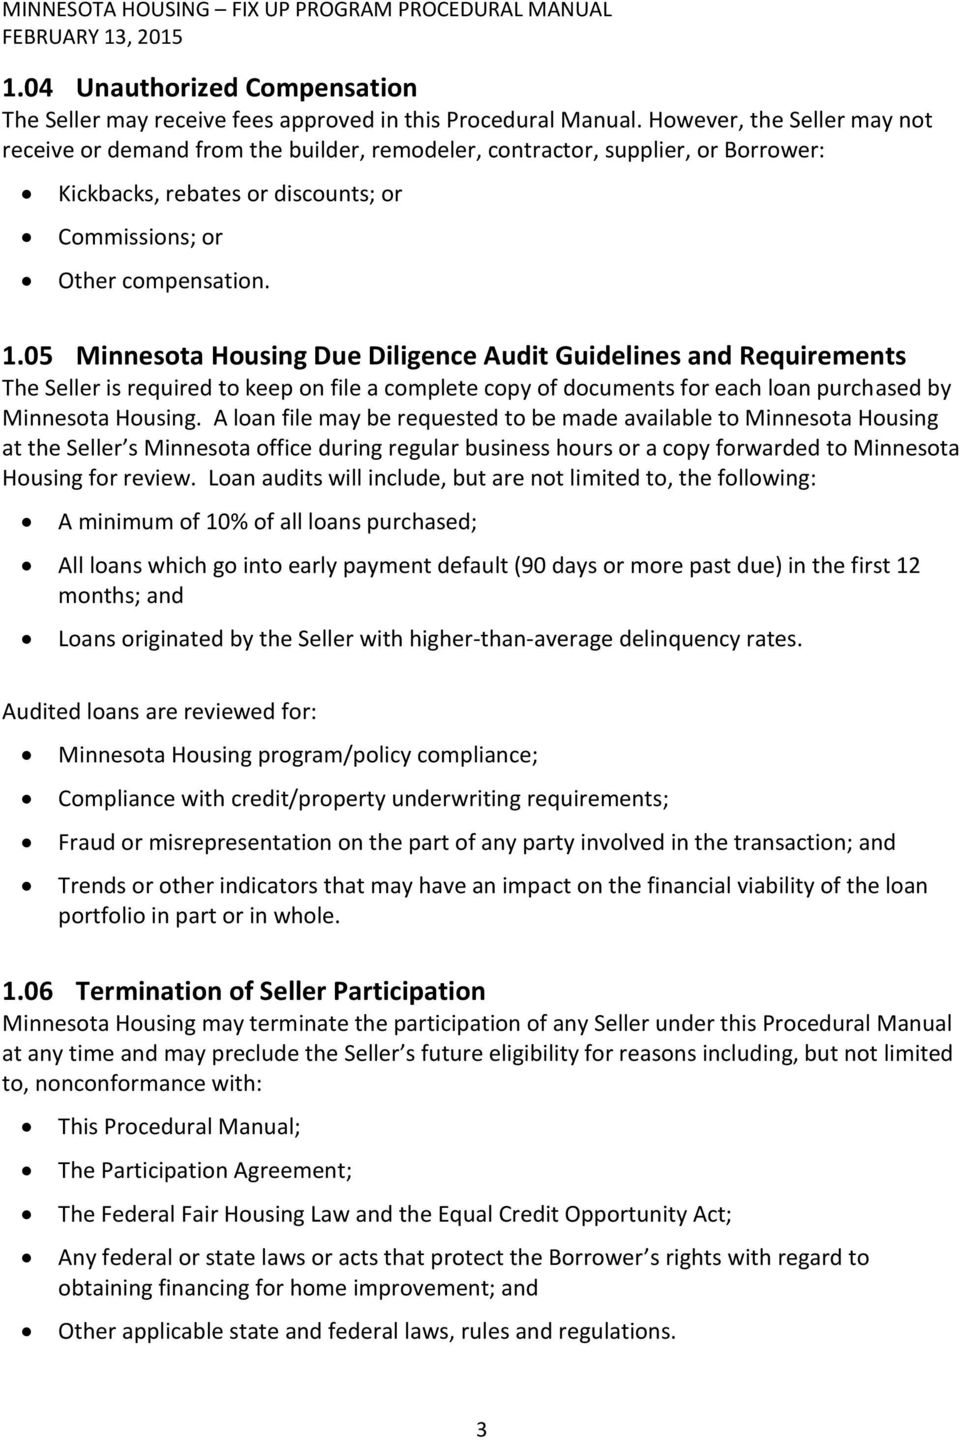 05 Minnesota Housing Due Diligence Audit Guidelines and Requirements The Seller is required to keep on file a complete copy of documents for each loan purchased by Minnesota Housing.